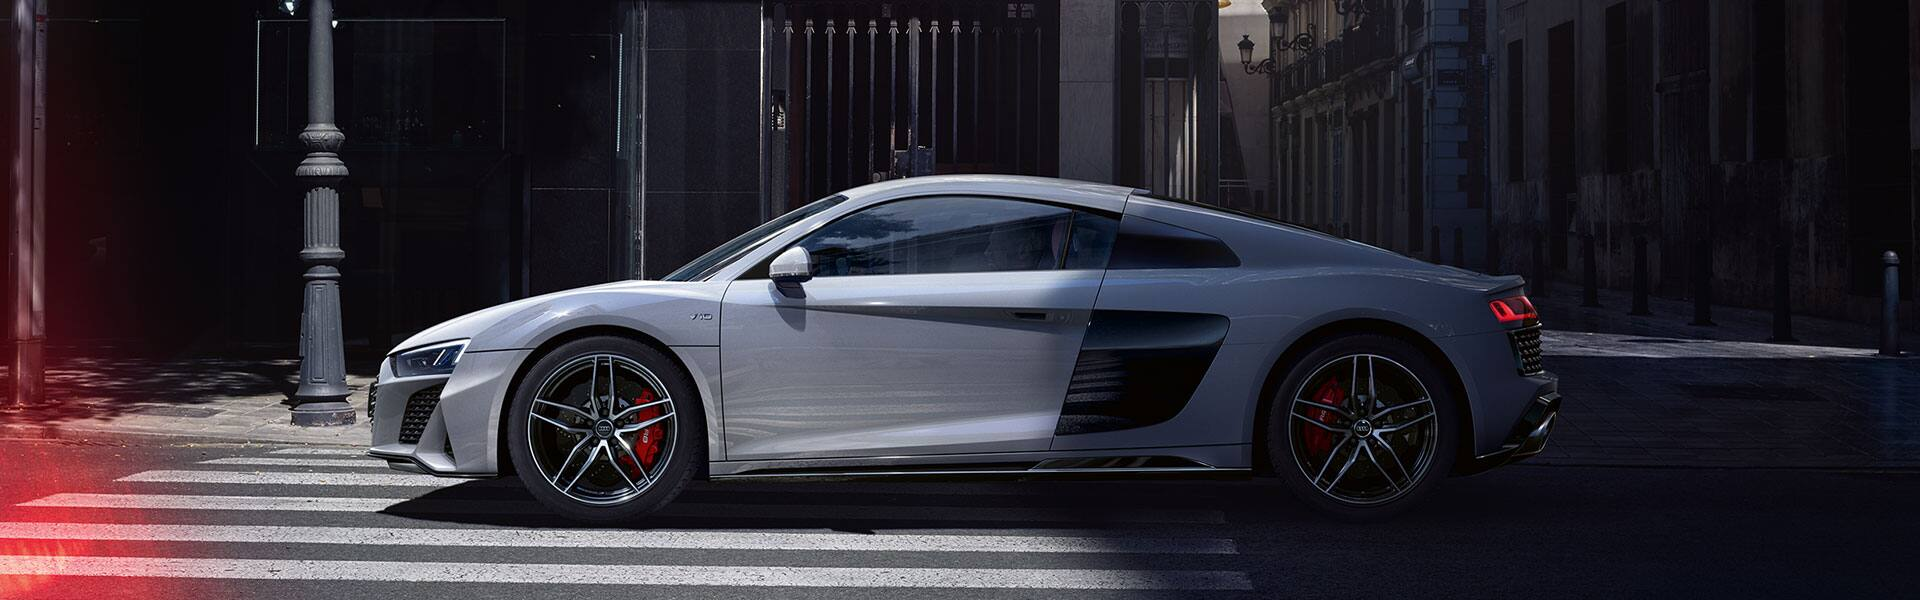 The new Audi R8 Coupé V10 quattro